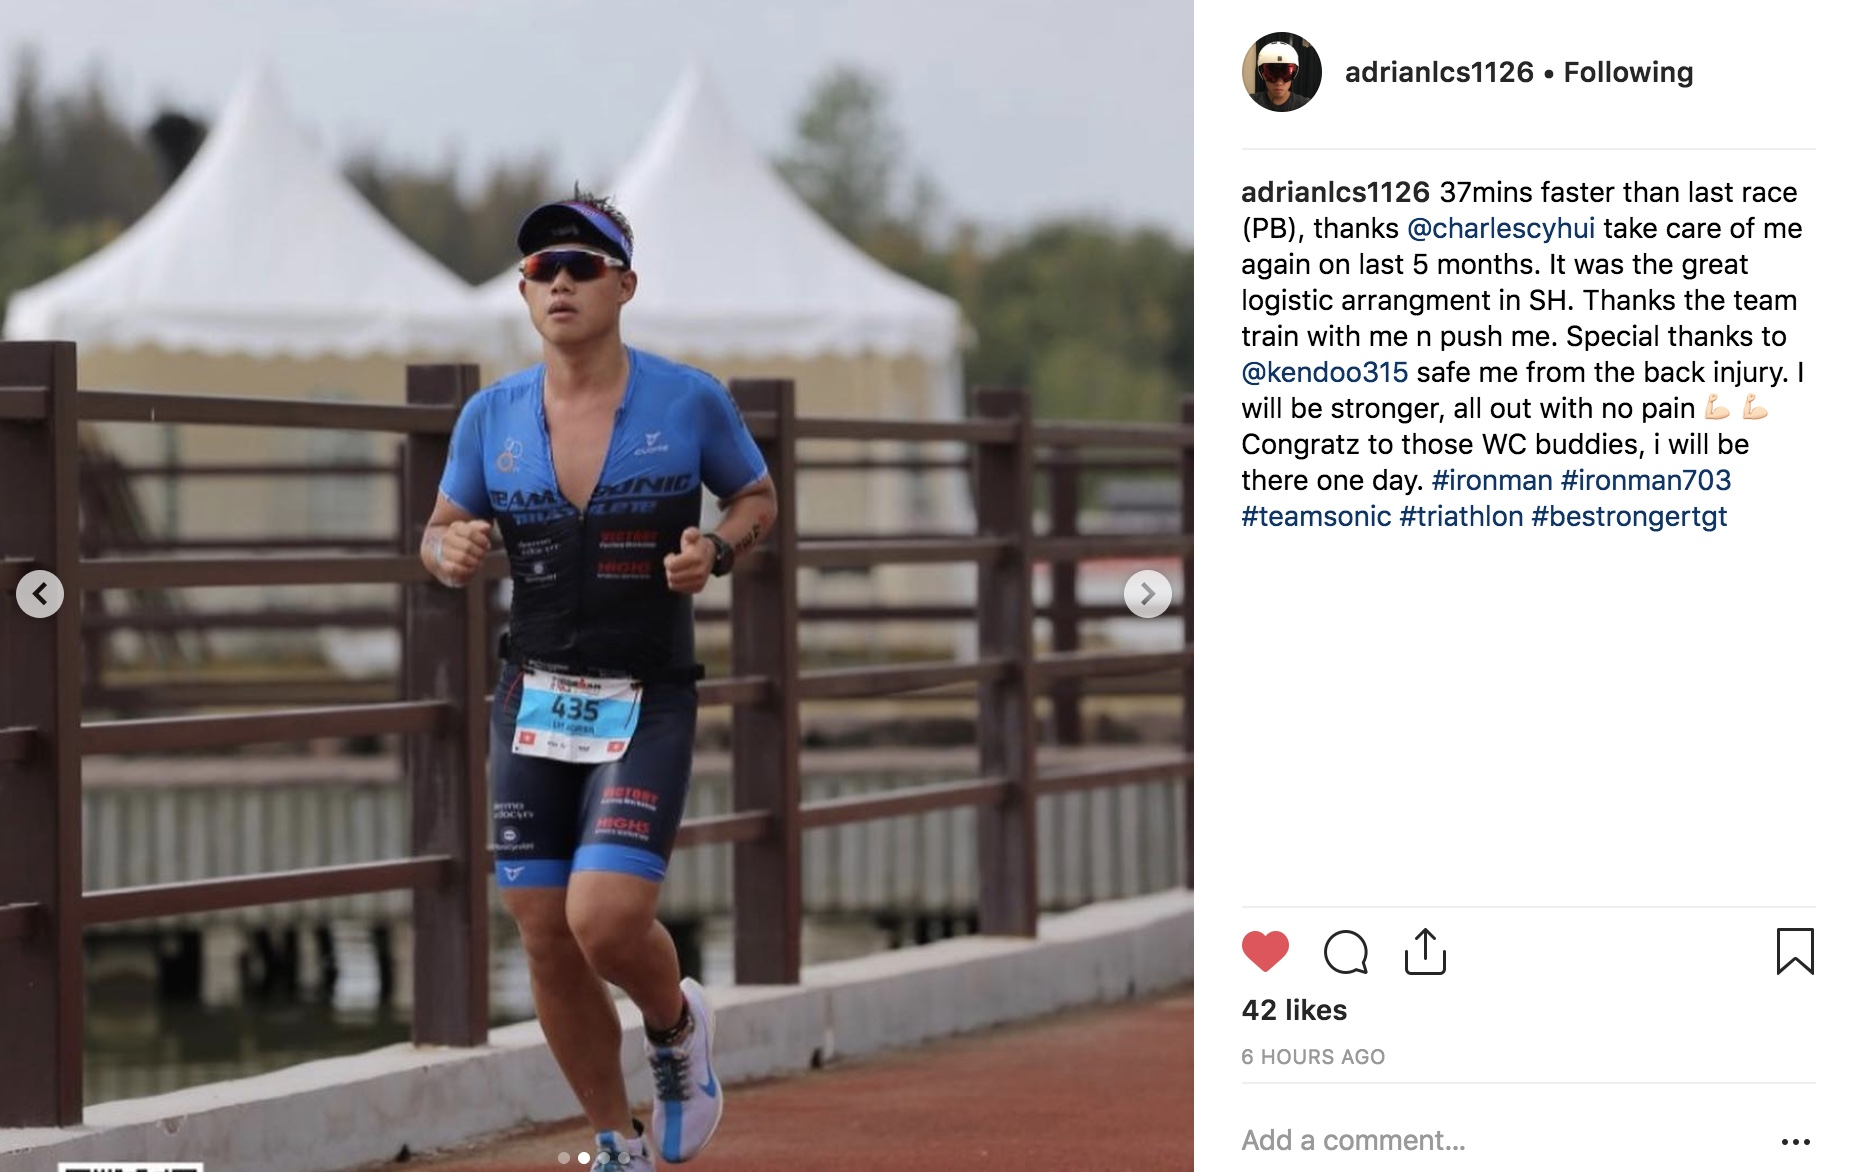 Adrian is one of the hardworking triathlete who dedicated into training, he is the one that willing to work on the weakest. As a college swimming background, he understand how to get though the hard set. He improved a lot though joining our run program unfortunately the back injury was triggered prior the race so he couldn't perform well in this time We will look forward to the next one and make it a even better one!